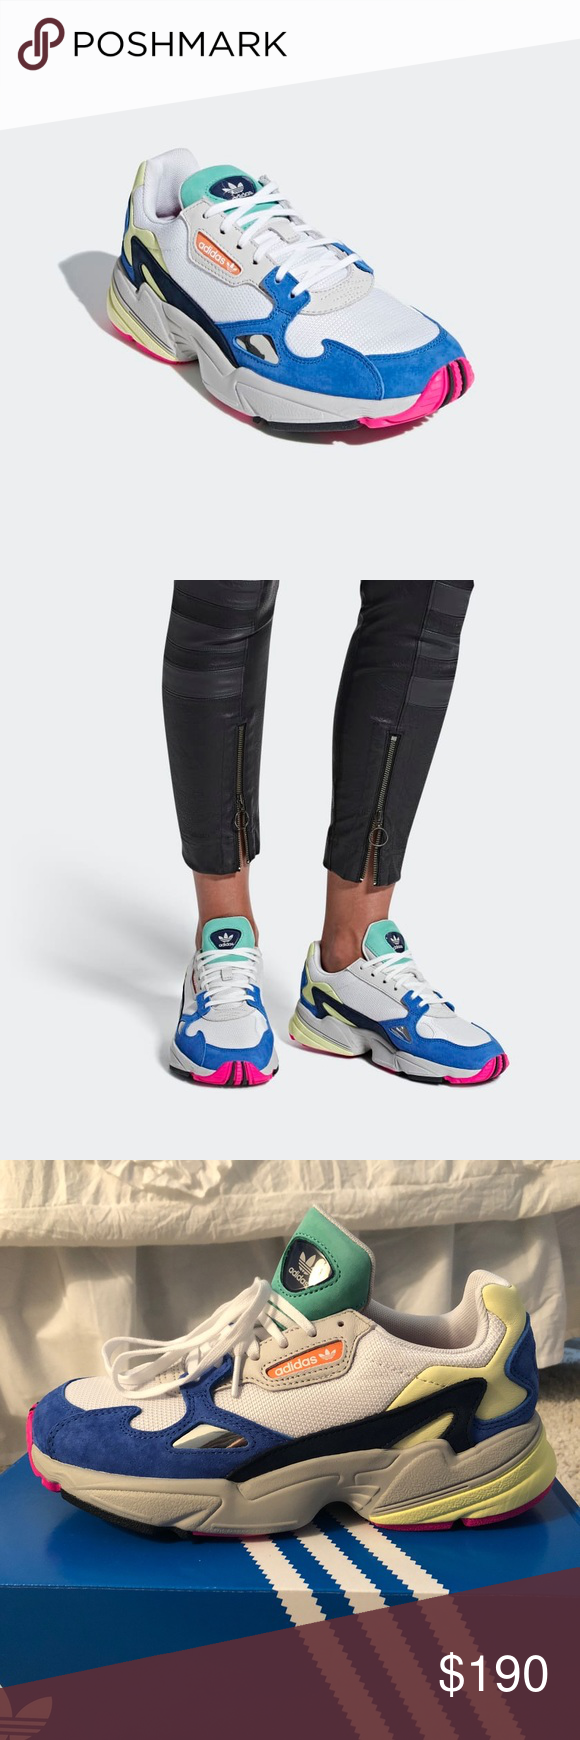 meet e0183 2a35d Adidas Falcon Sneaker Size W7 Currently SOLD OUT on every website! Cloud  whitecloud whiteblue colorway. Run large - suggest getting a size smaller  than ...